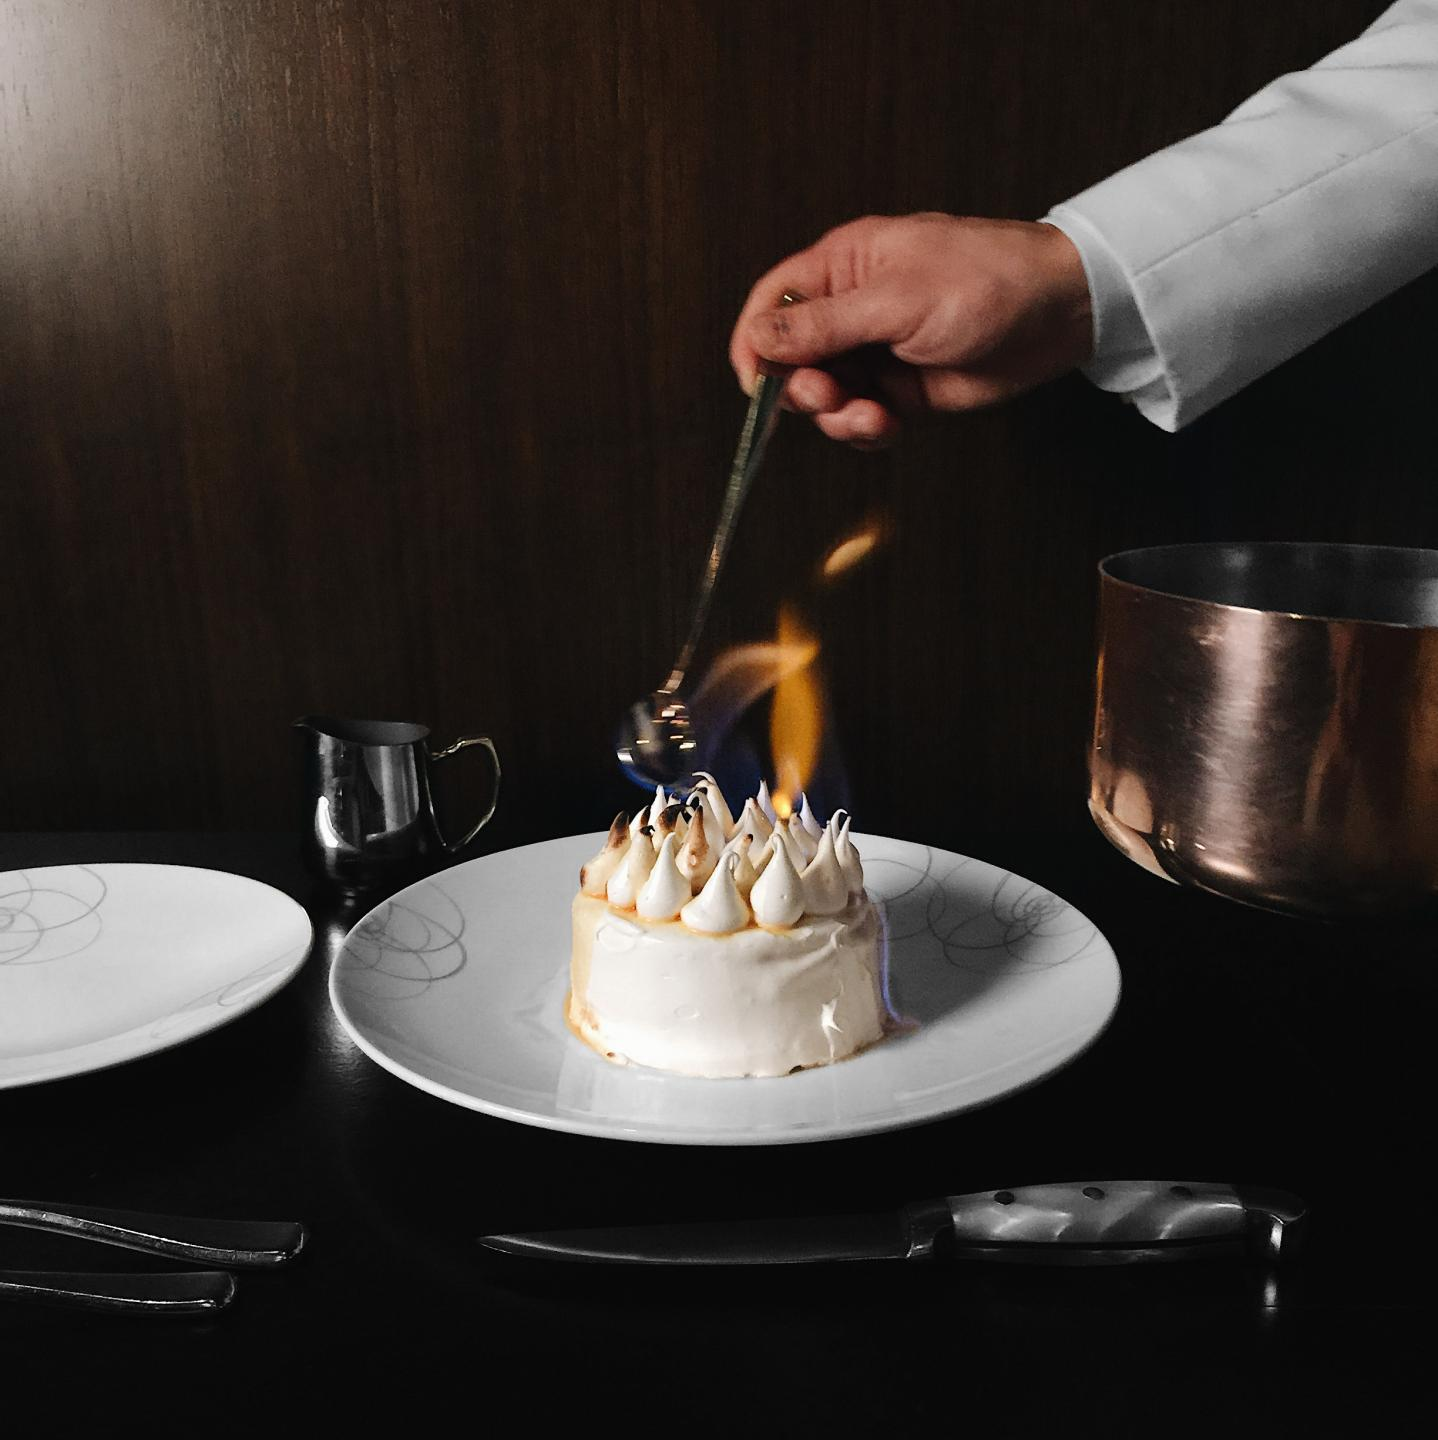 RPM Steak Baked Alaska restaurant horoscope food astrology